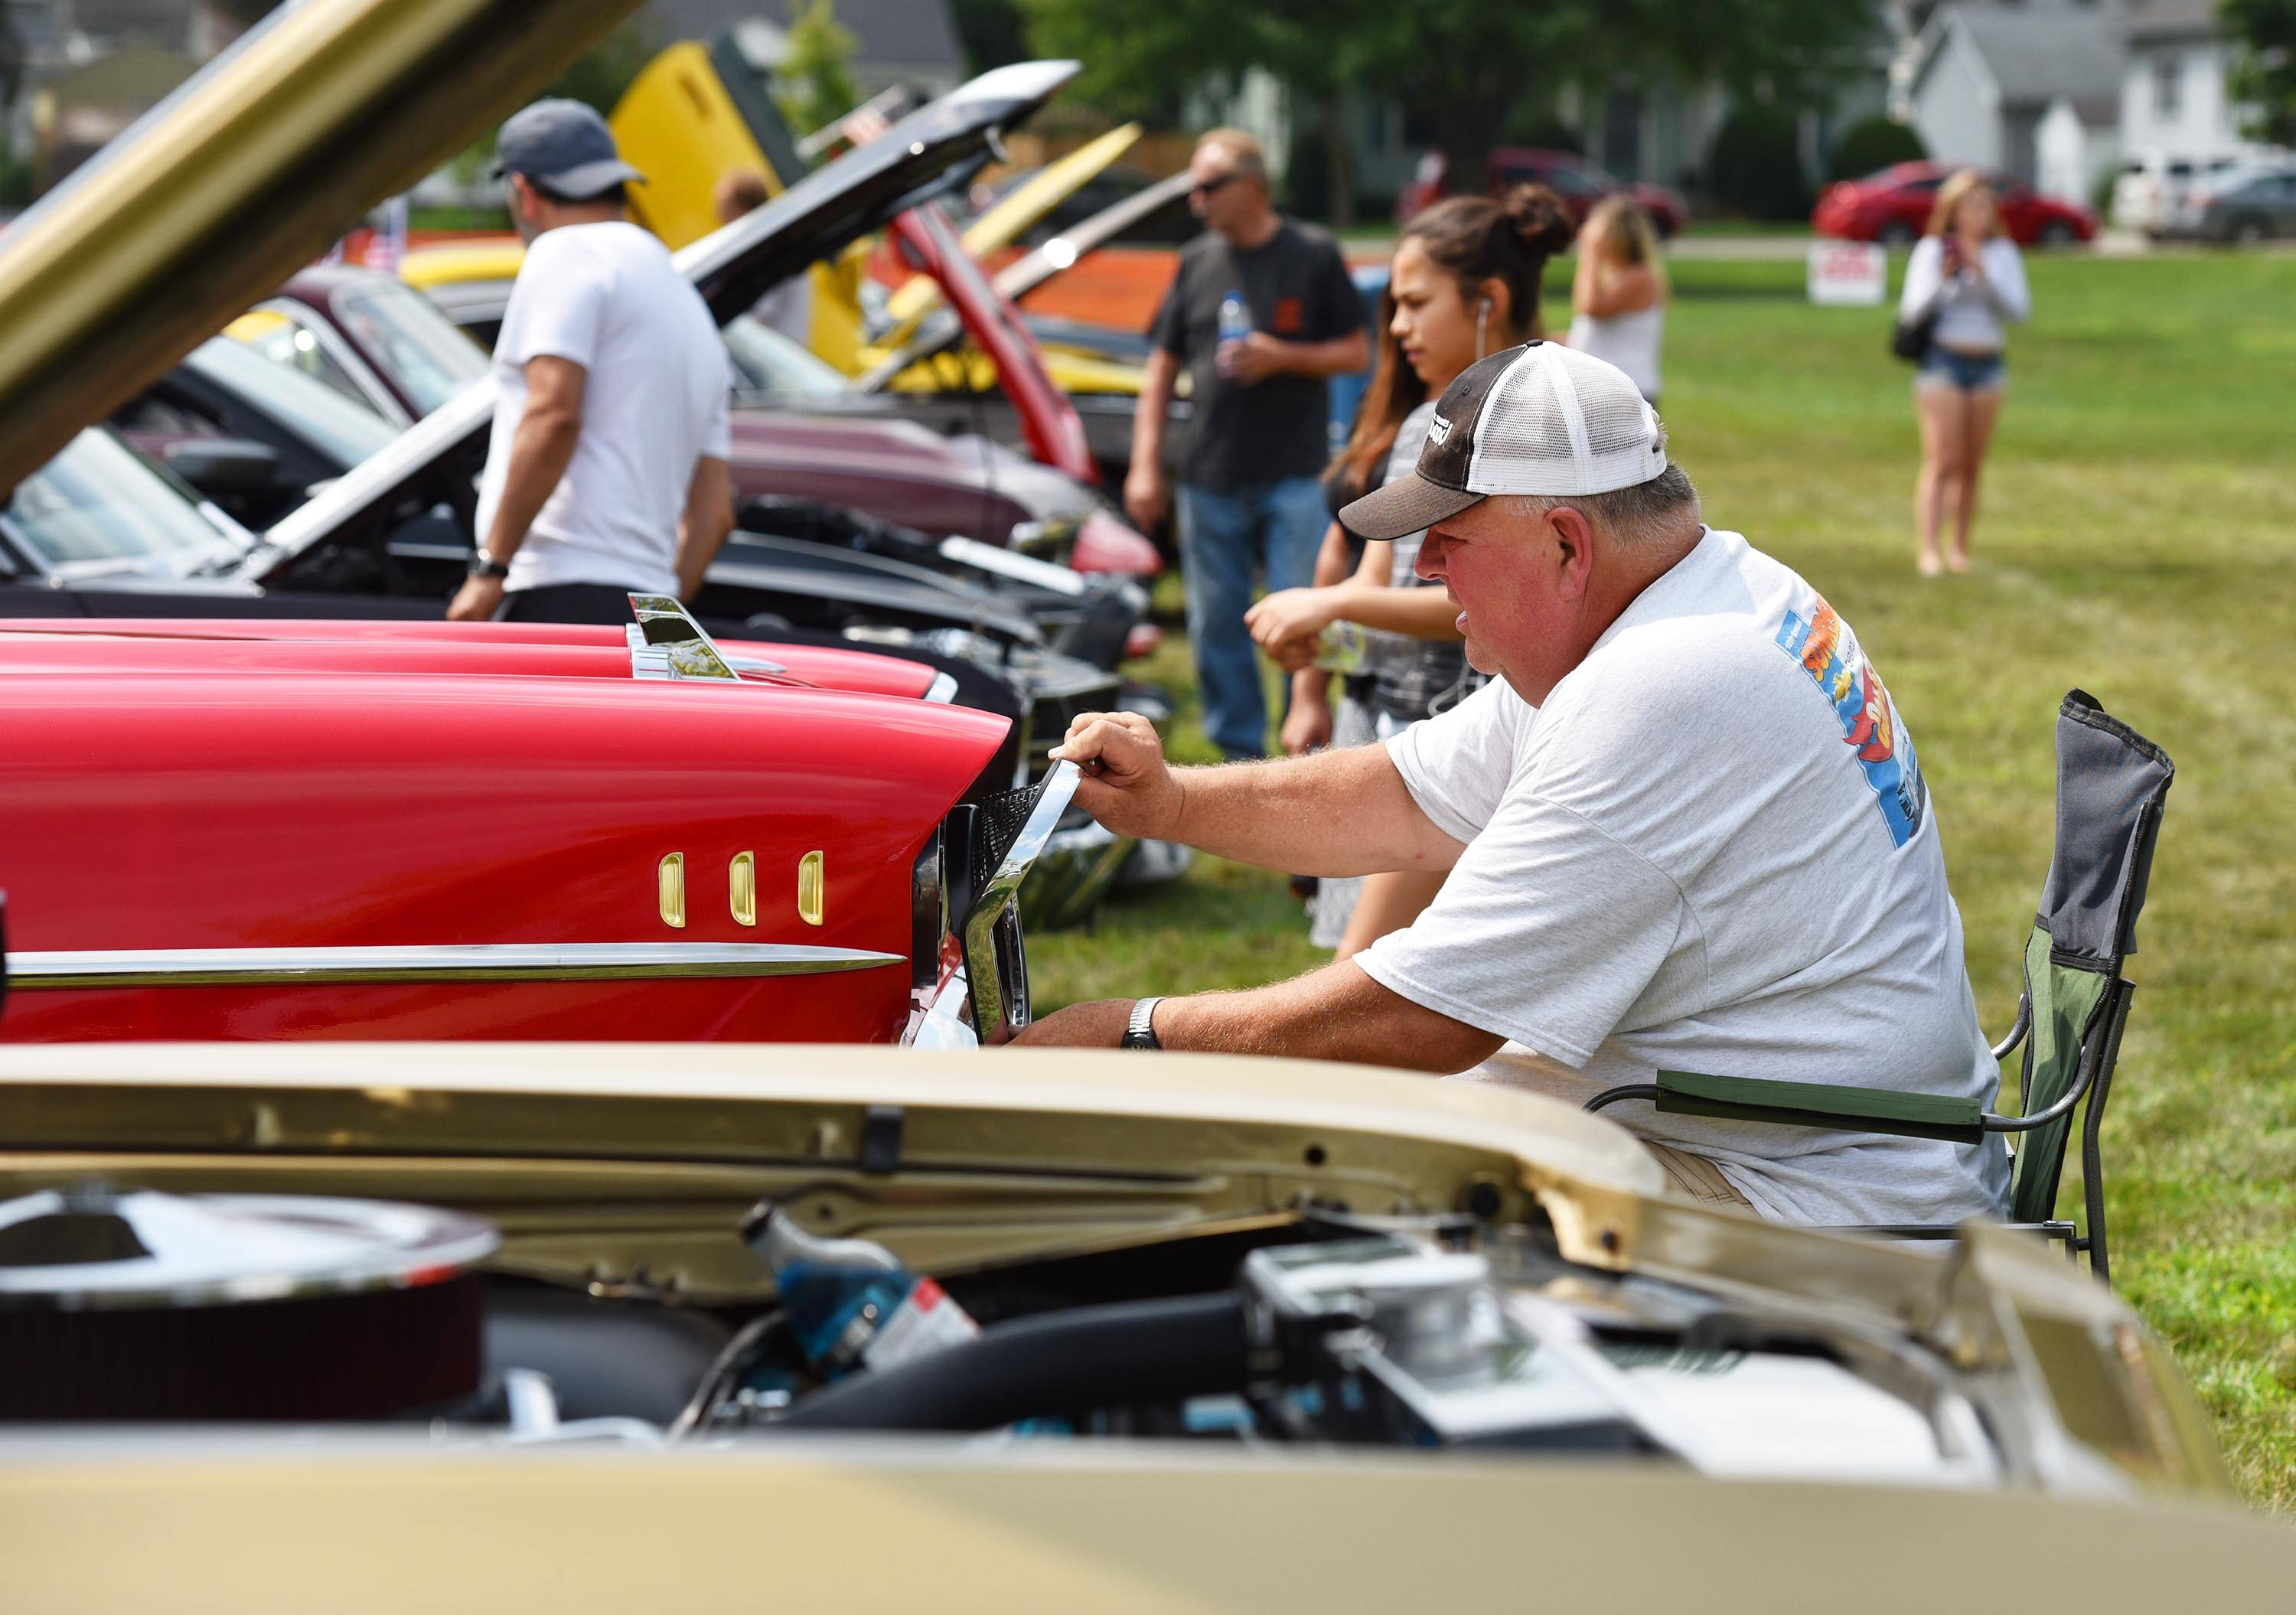 Wayne Bastiaans replaces the headlight frame after adjusting the angle of the beam on his 1957 Chevy Bel Air at a car show at the Rock the Fox festival, sponsored by Oddfellows Century Lodge 492, in Carpenter Park in Carpentersville Saturday. Bastiaans is from Carpentersville and has owned the car for 18 years.